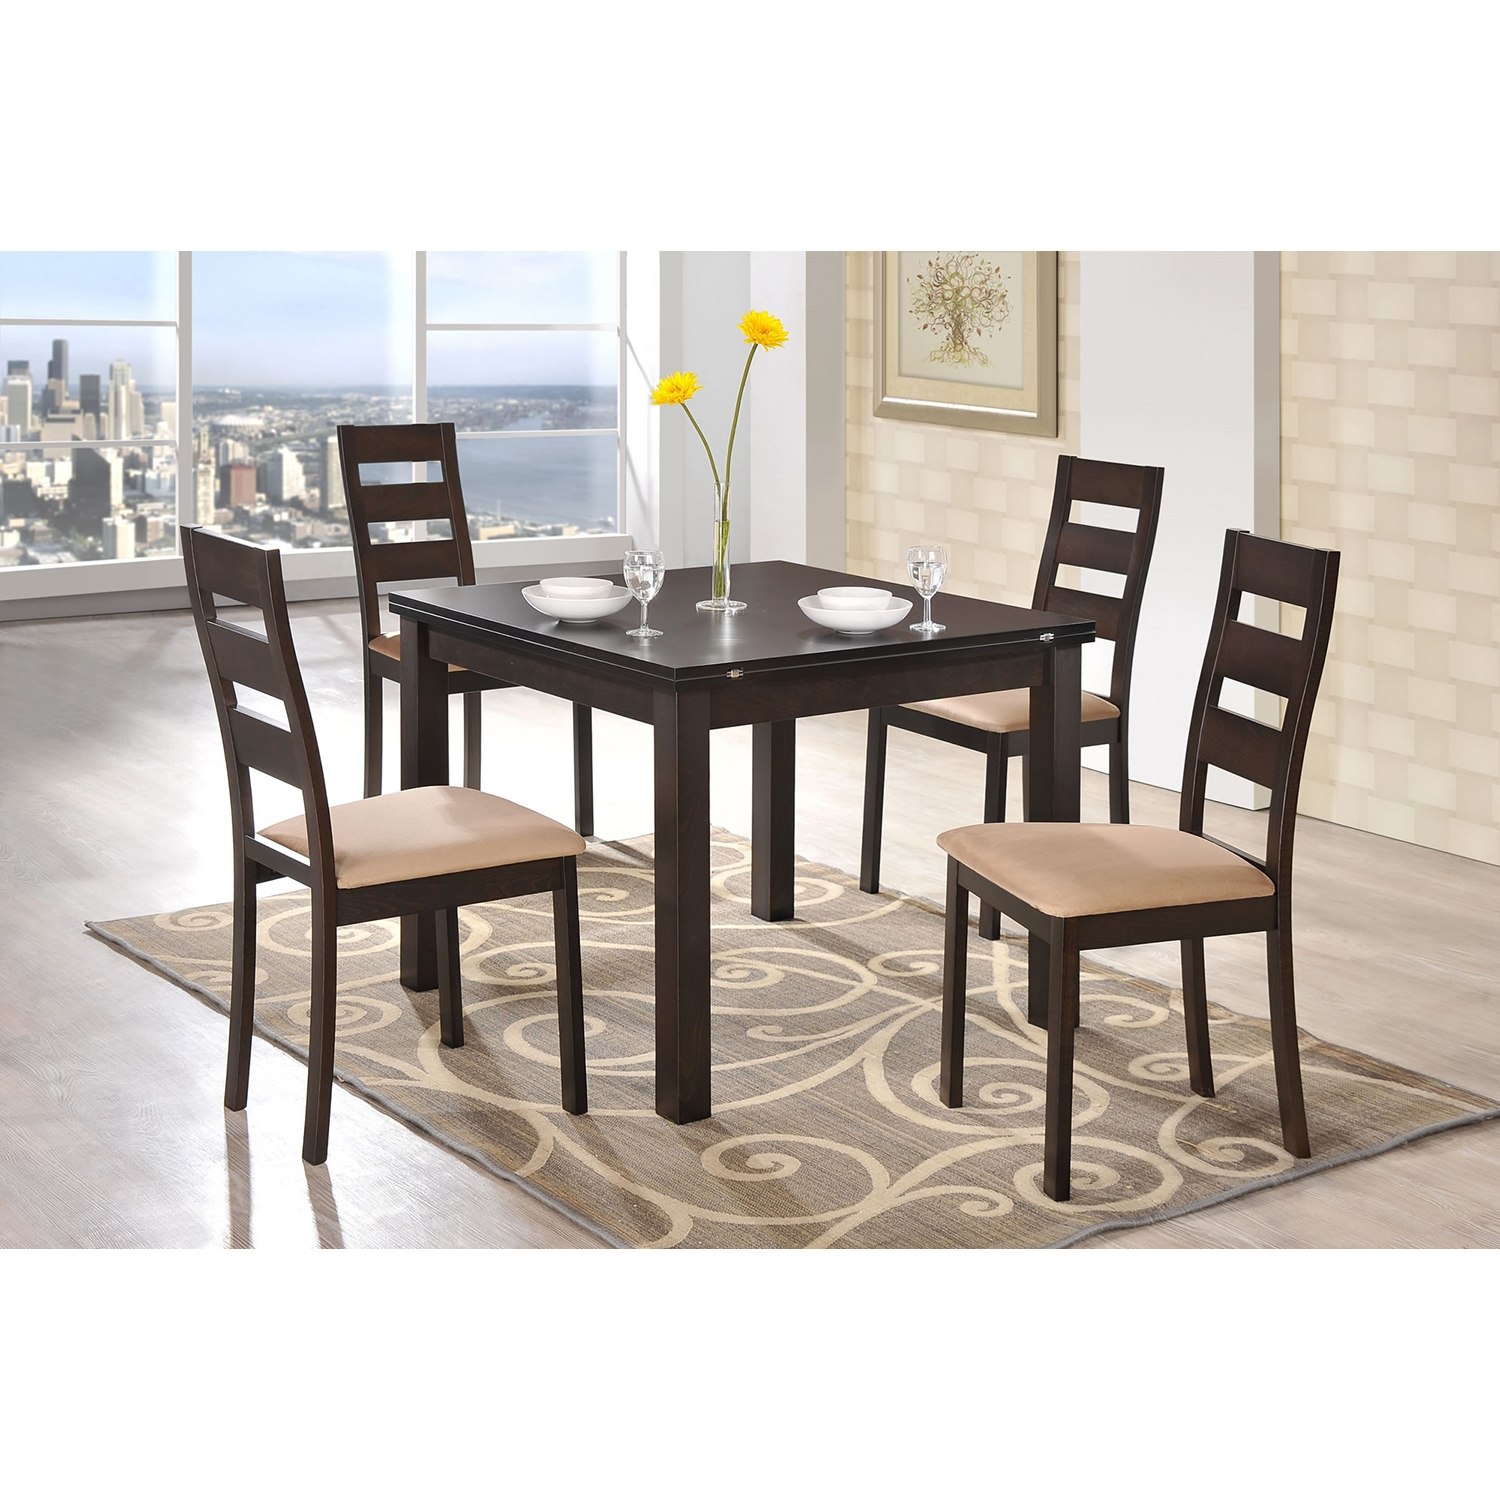 Shelby 5-Piece Dining Set in Dark Walnut - GLO-D6970DT-D2443DC-M-SET